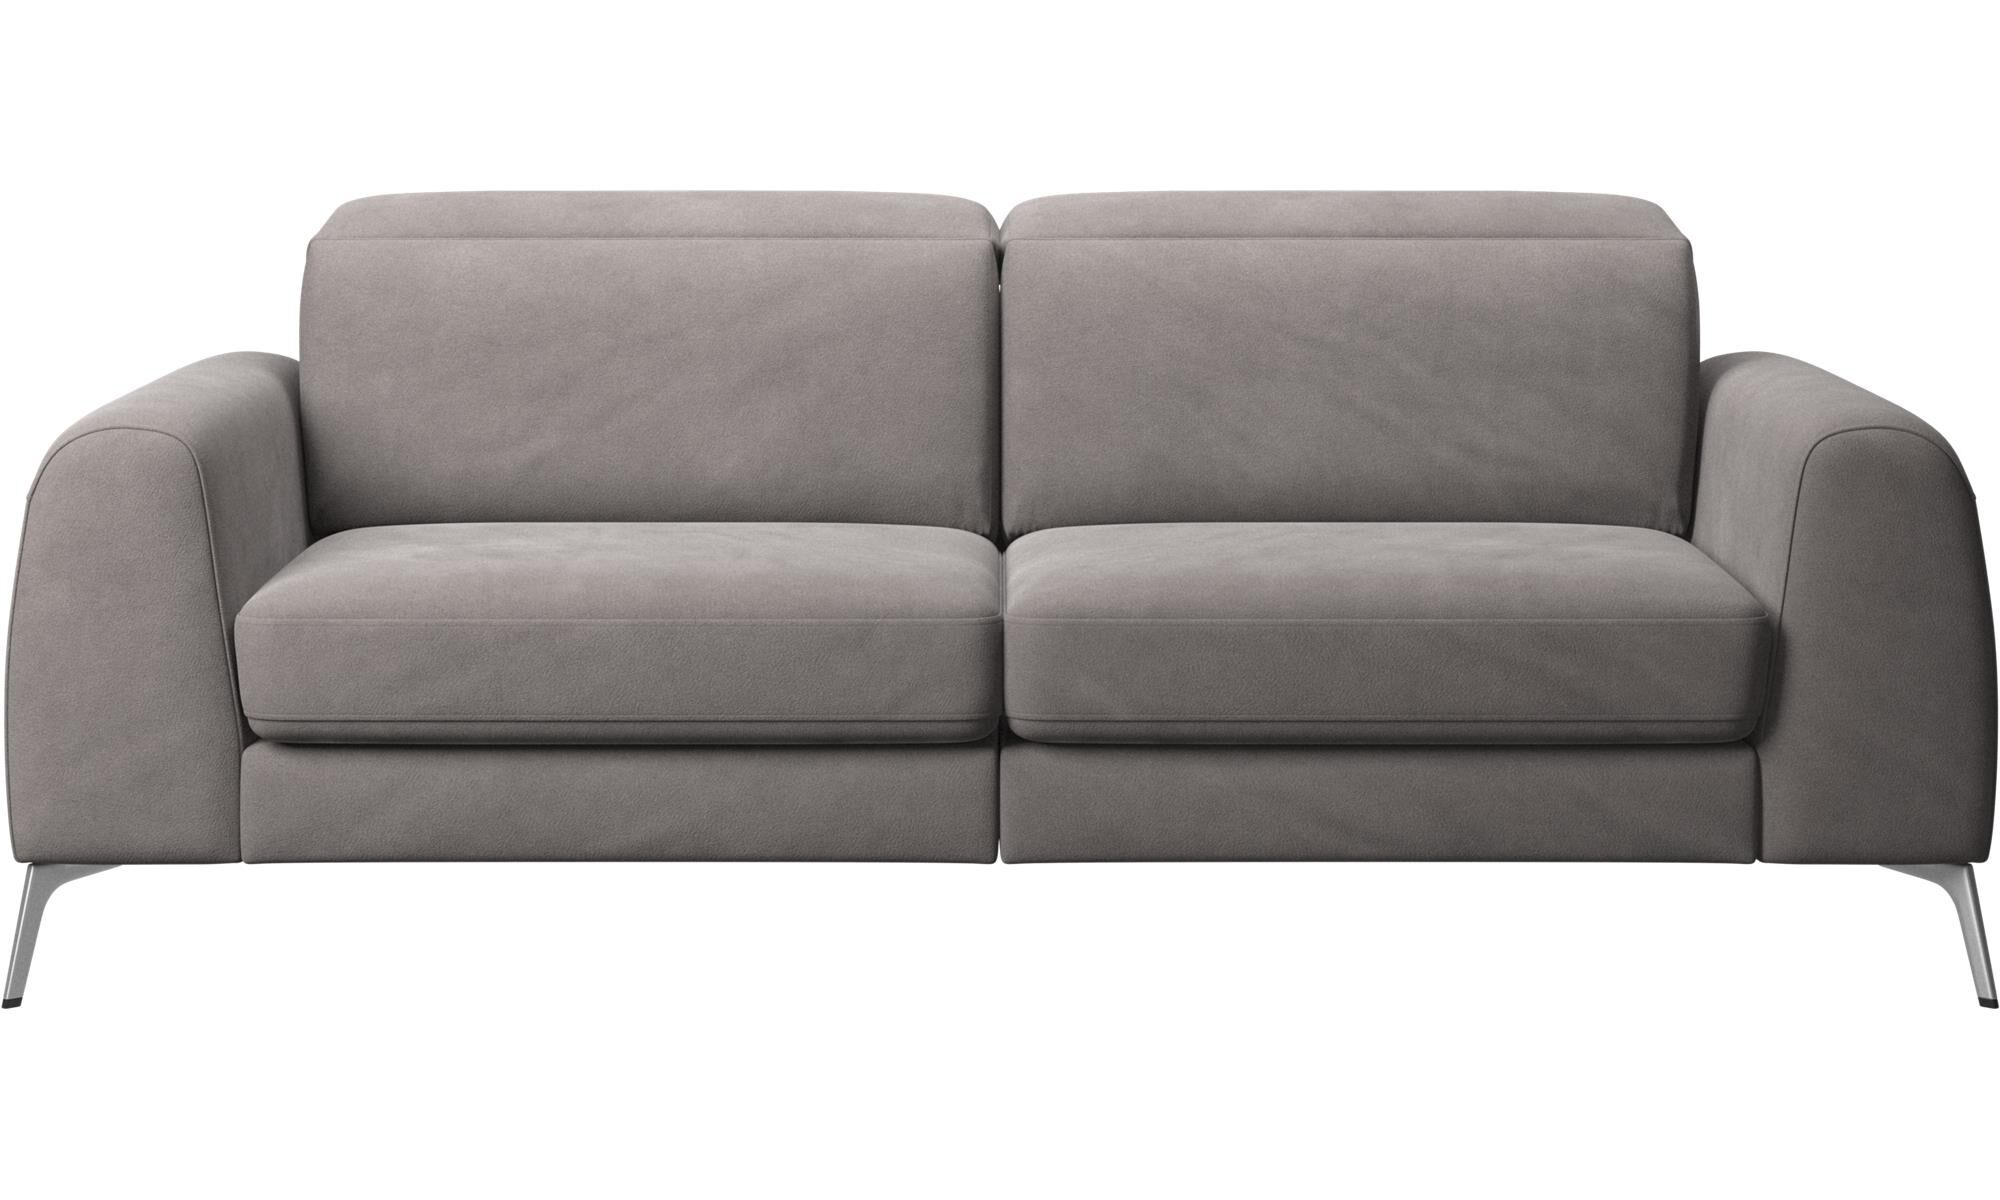 Madison Sofa With Sleeper Function And Manual Headrest